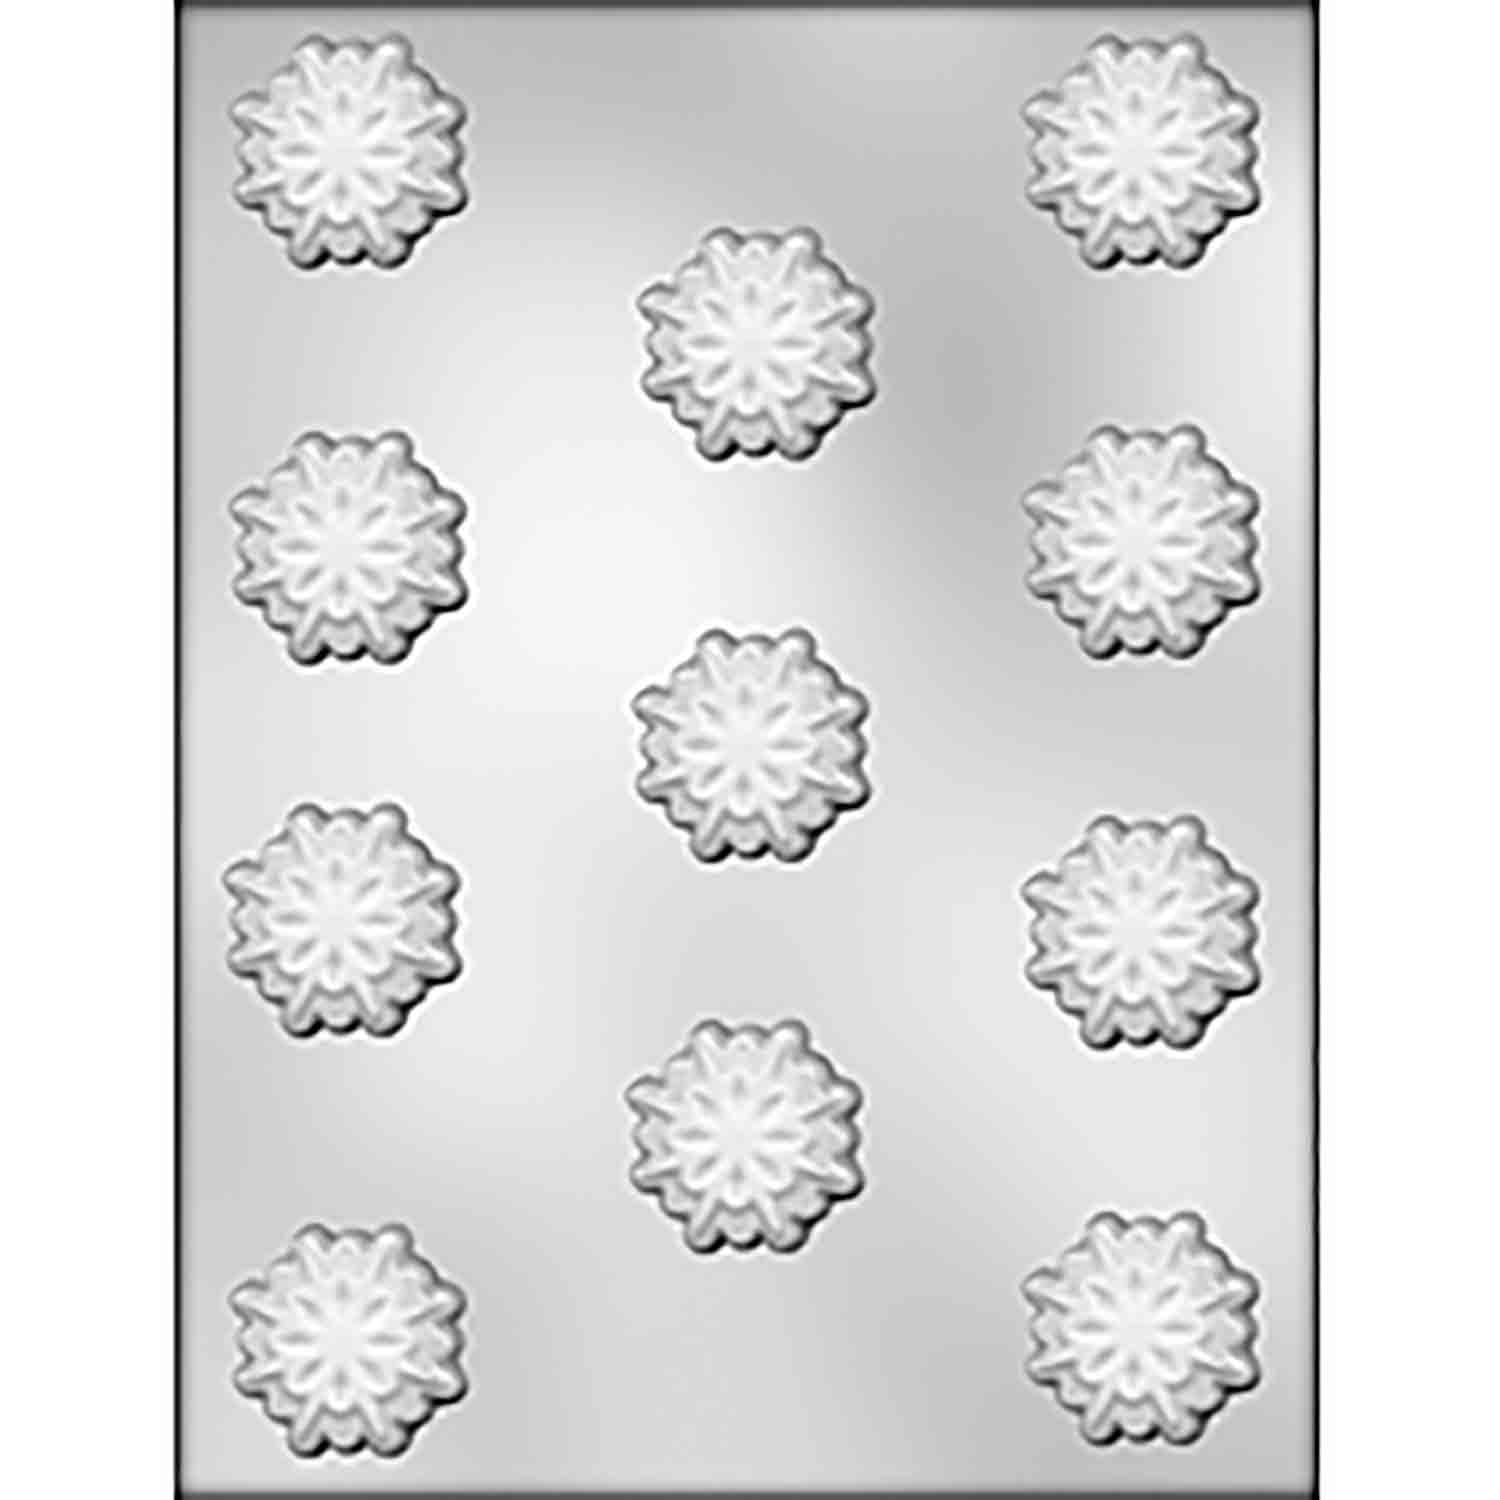 8 Point Snowflake Chocolate Candy Mold